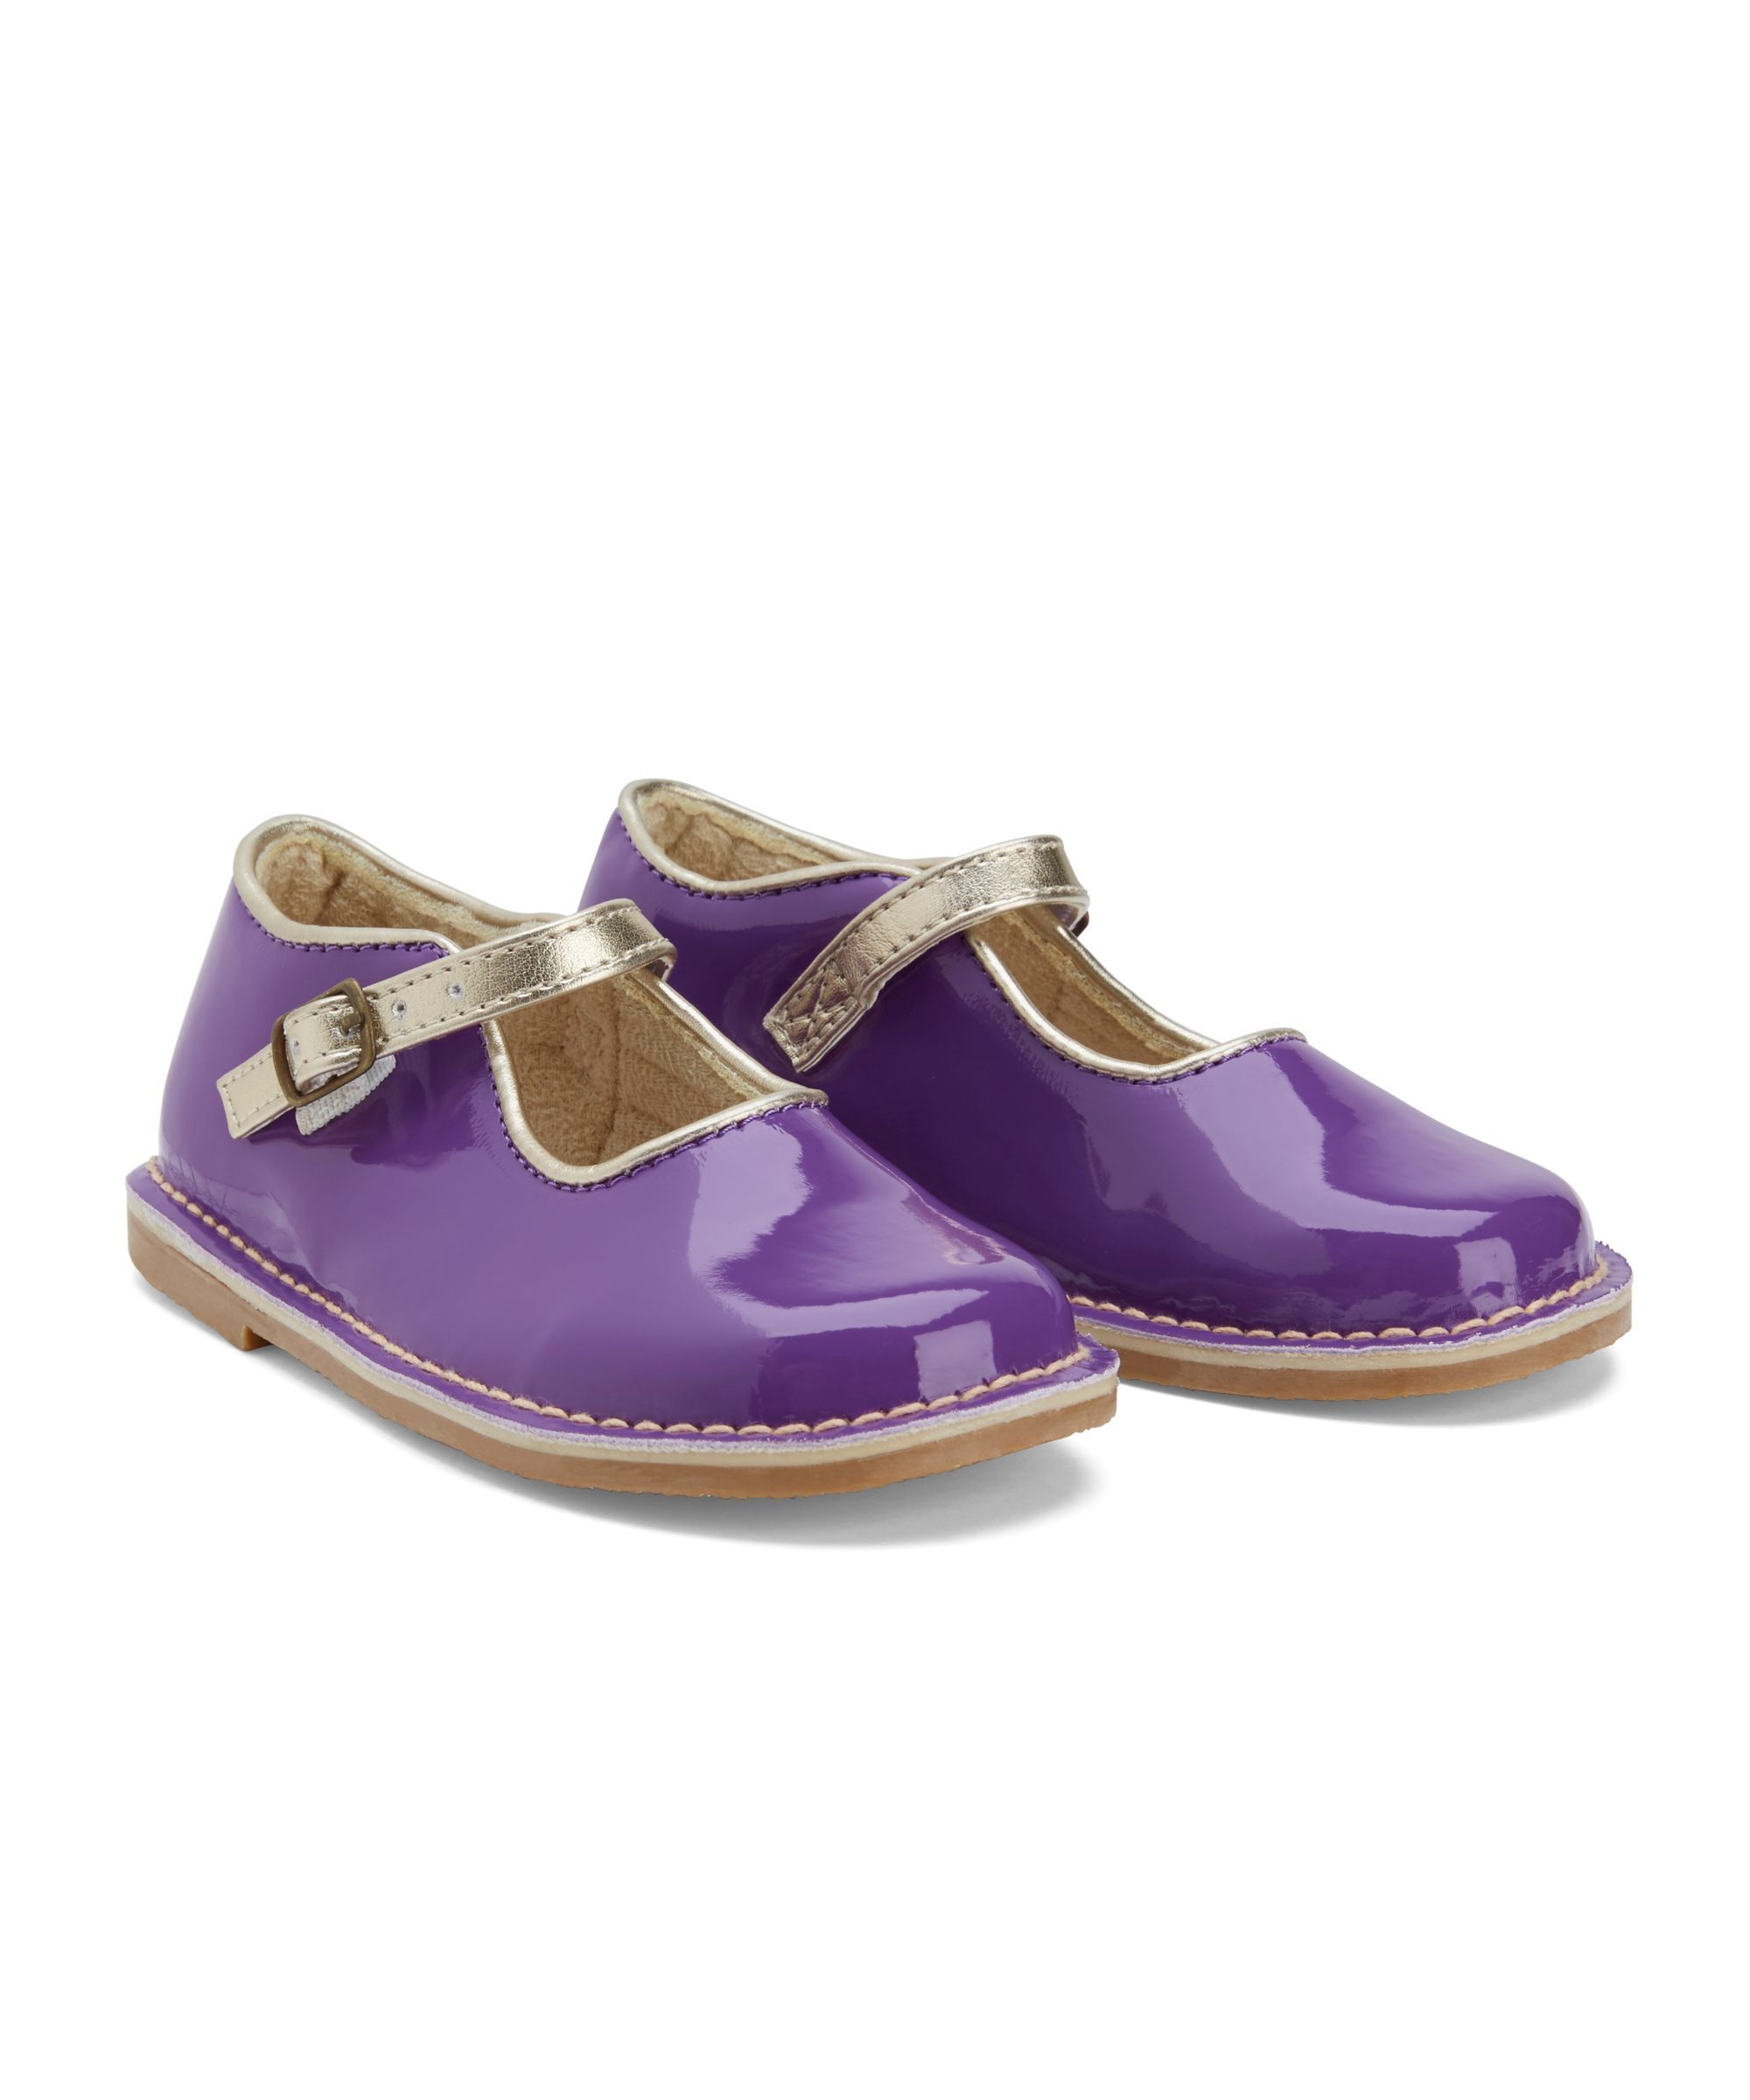 4497afc5e37d Little Bird by Jools Purple Patent Shoes